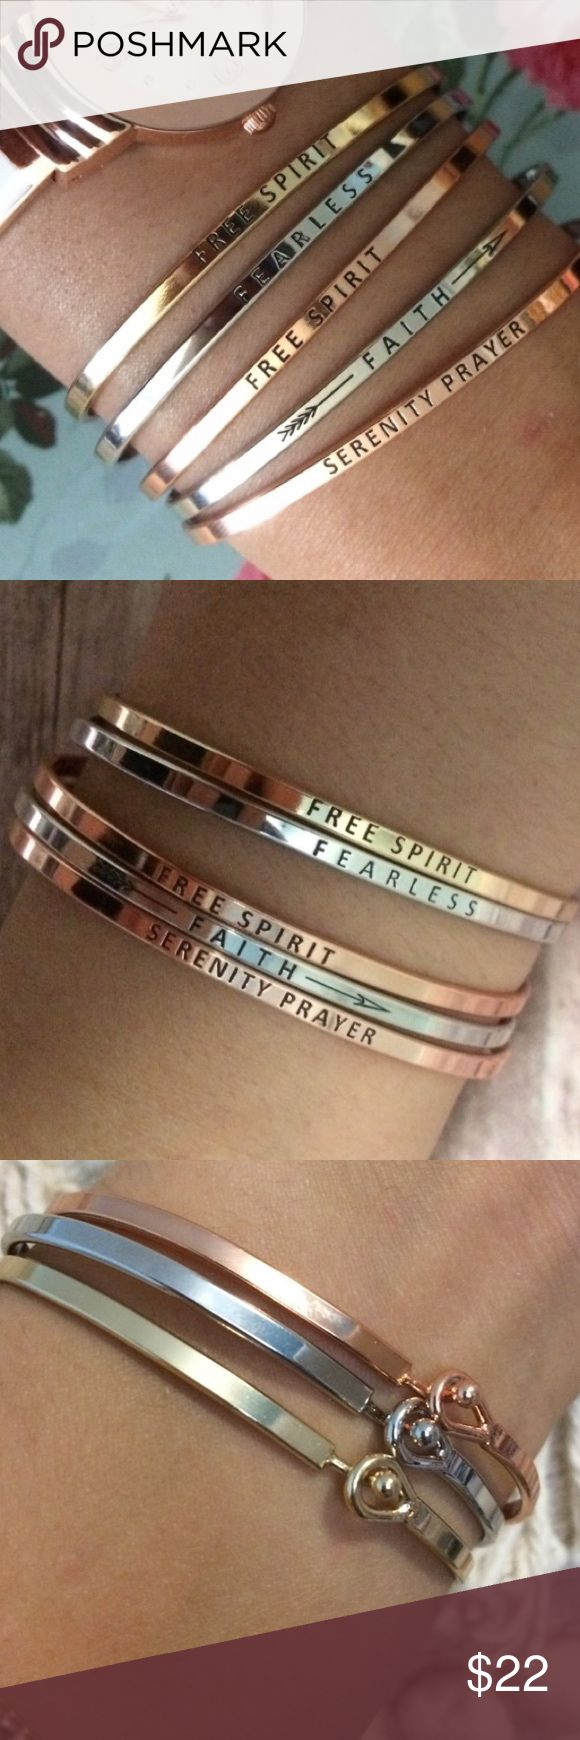 Serenity Prayer gold message bracelet bangle Serenity Prayer message bracelet bangle. Comes in gold or rose gold. Other messages also available. Clasps in back. Brass, plated with gold. If you want to bundle with other message bracelets they ar available at a discounted rate. 💌fast shipping guaranteed💌 Jewelry Bracelets